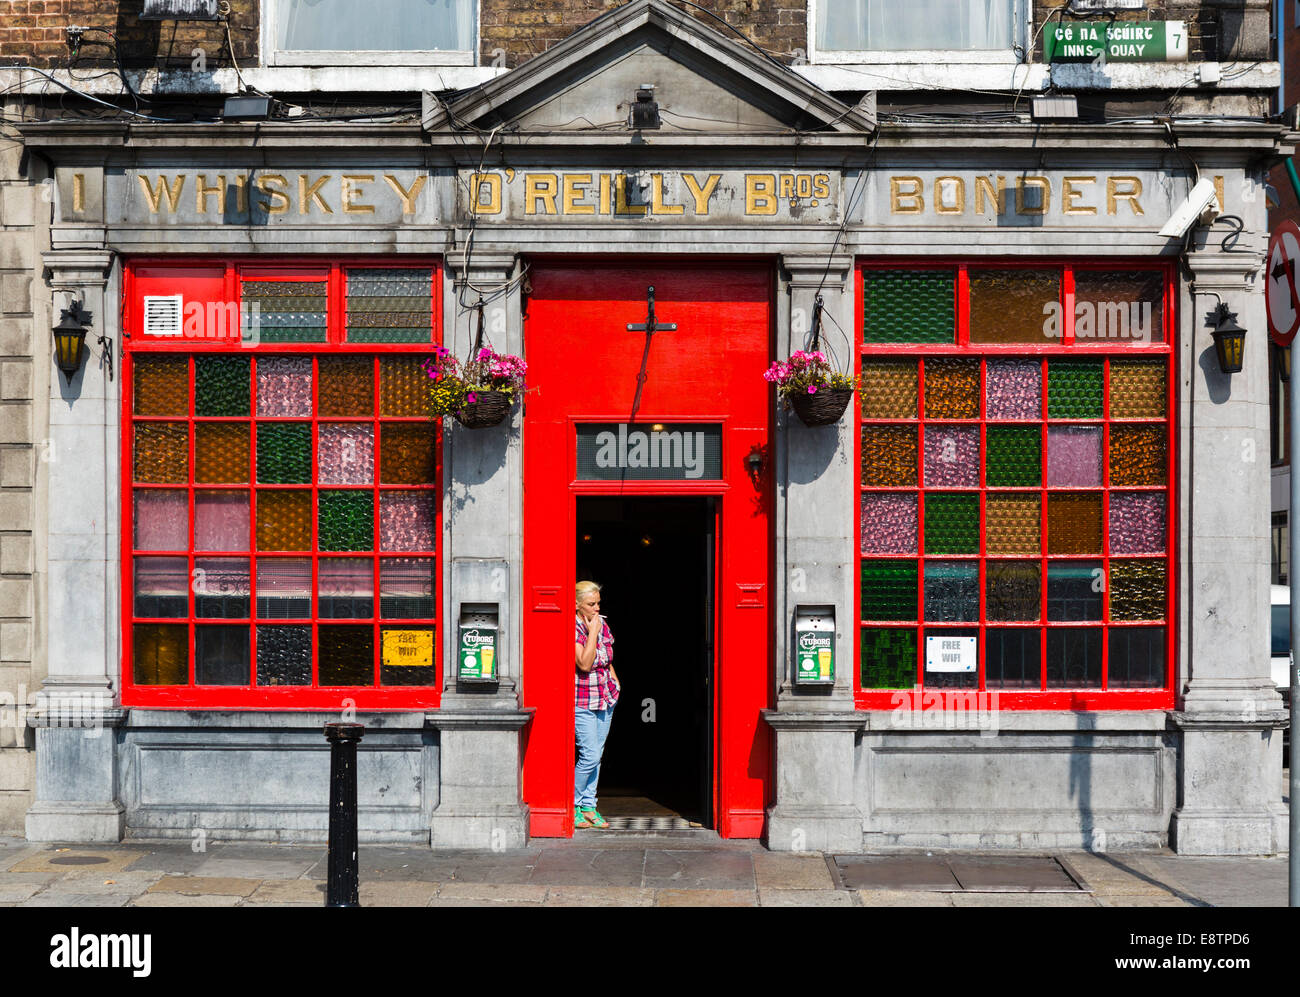 Woman smoking a cigarette in the doorway of a traditional pub on Inns Quay in the city centre, Dublin City, Republic - Stock Image